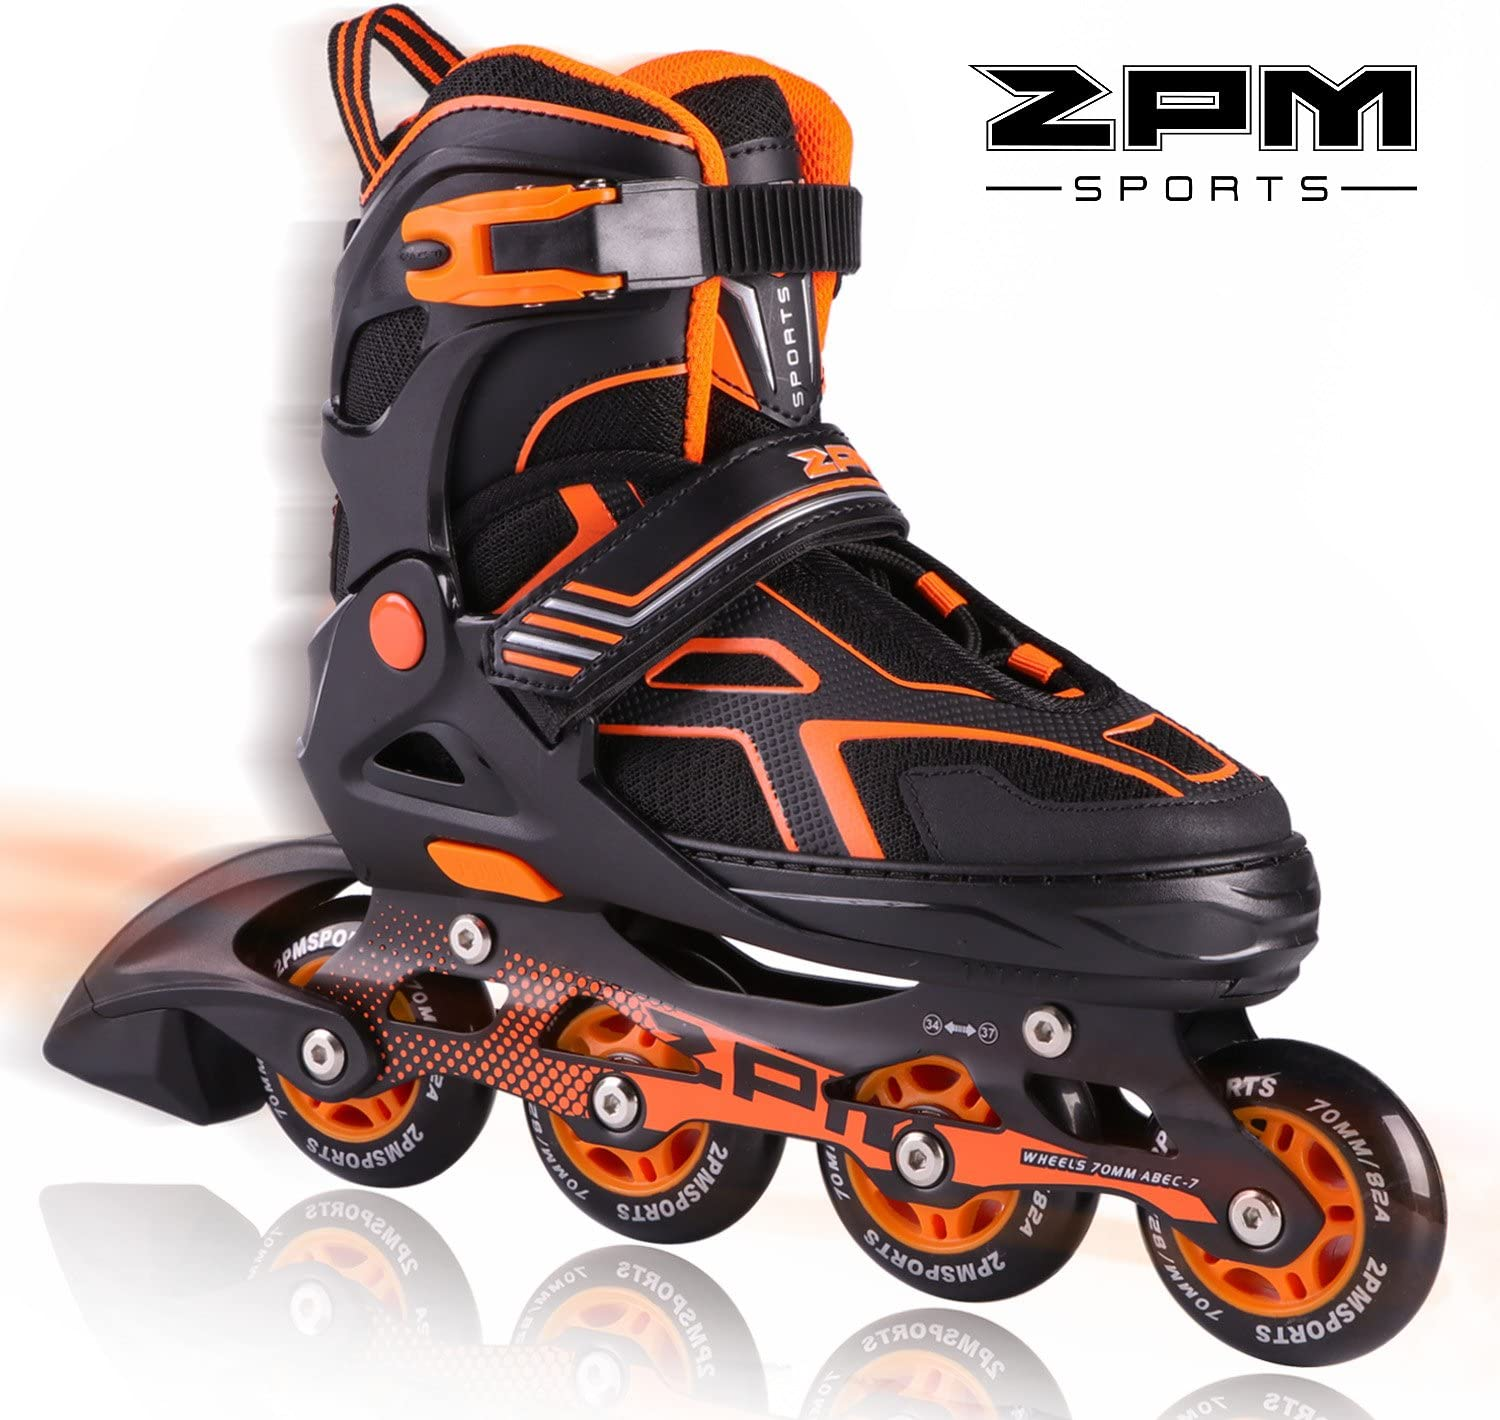 2PM SPORTS Torinx Orange Red Green Black Boys Adjustable Inline Skates, Fun Roller Blades for Kids, Beginner Roller Skates for Girls, Men and Ladies